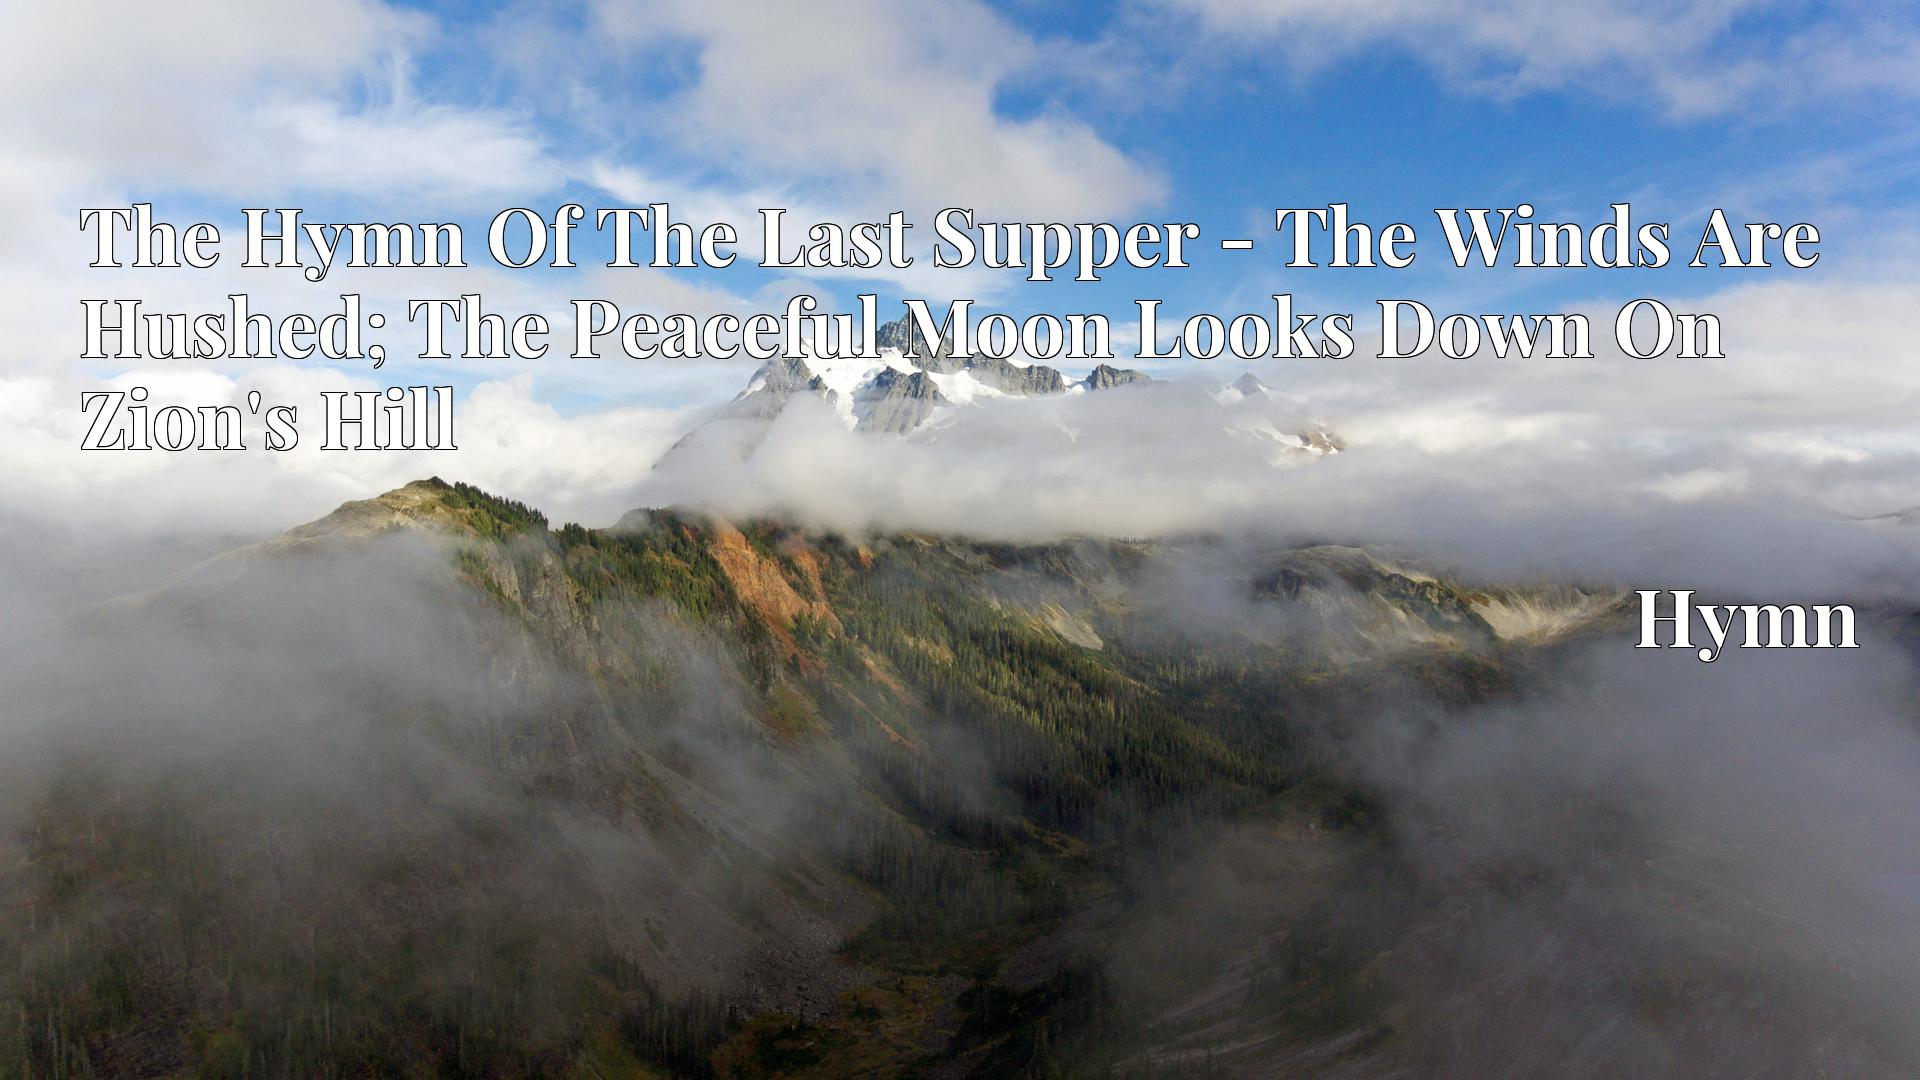 The Hymn Of The Last Supper - The Winds Are Hushed; The Peaceful Moon Looks Down On Zion's Hill - Hymn